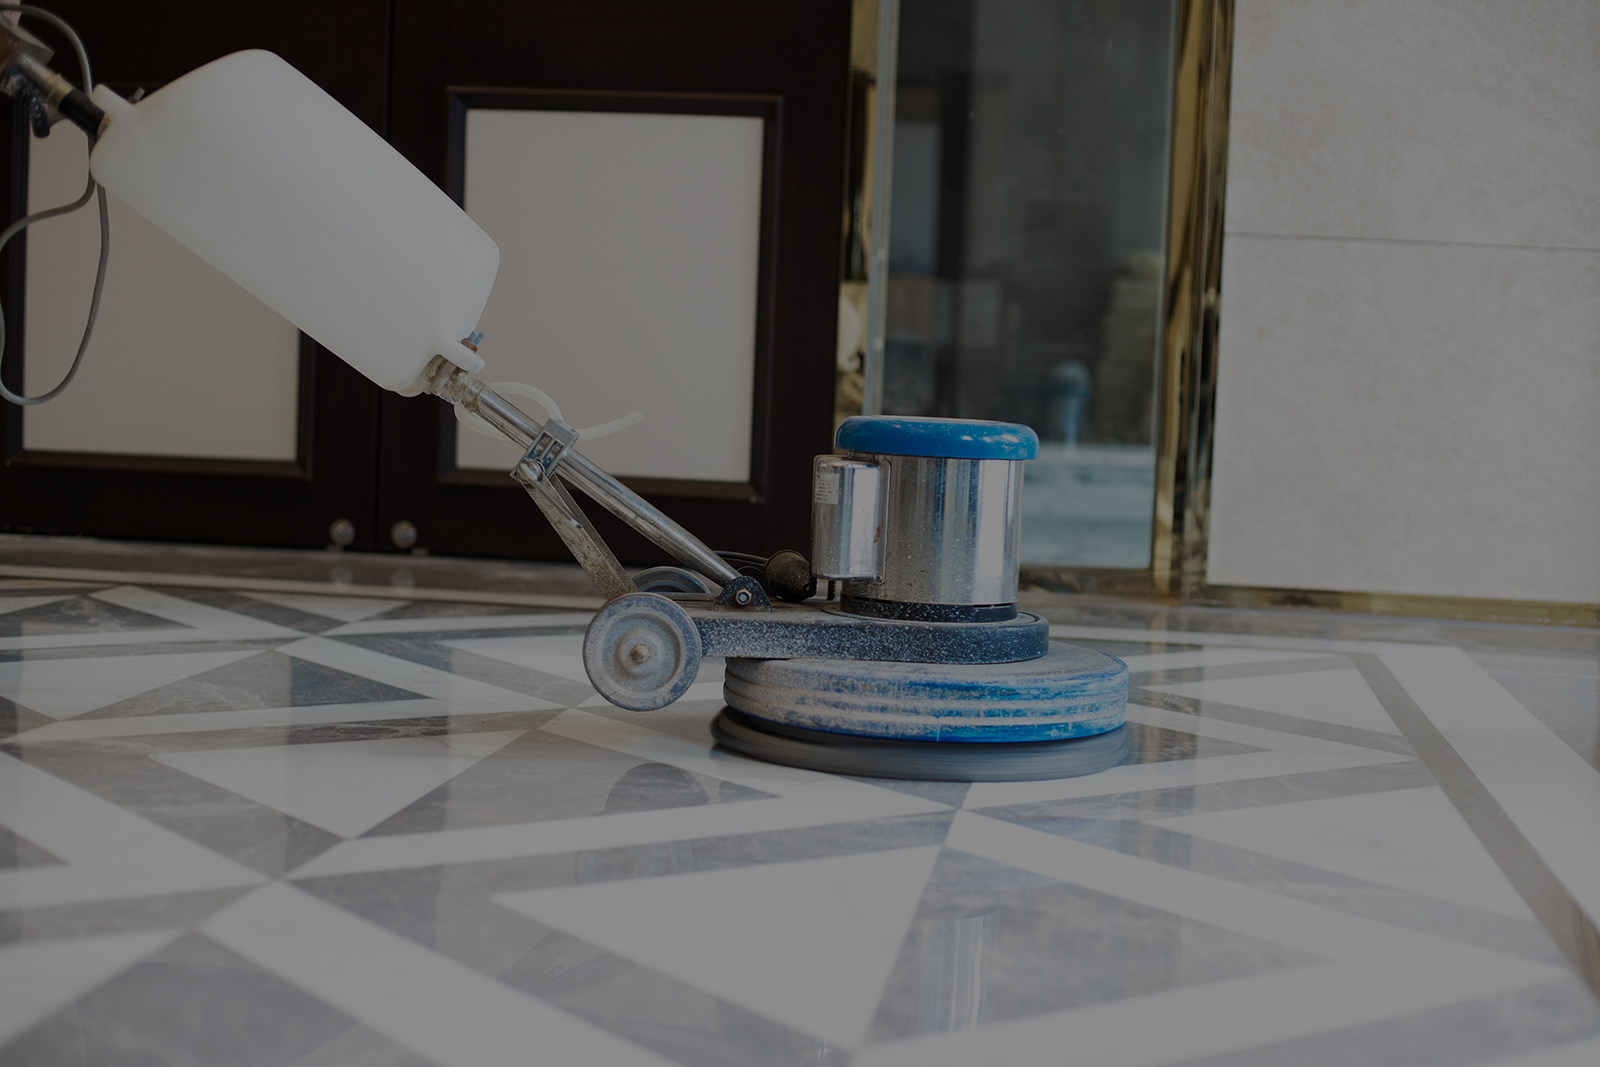 working polisher on marble floor